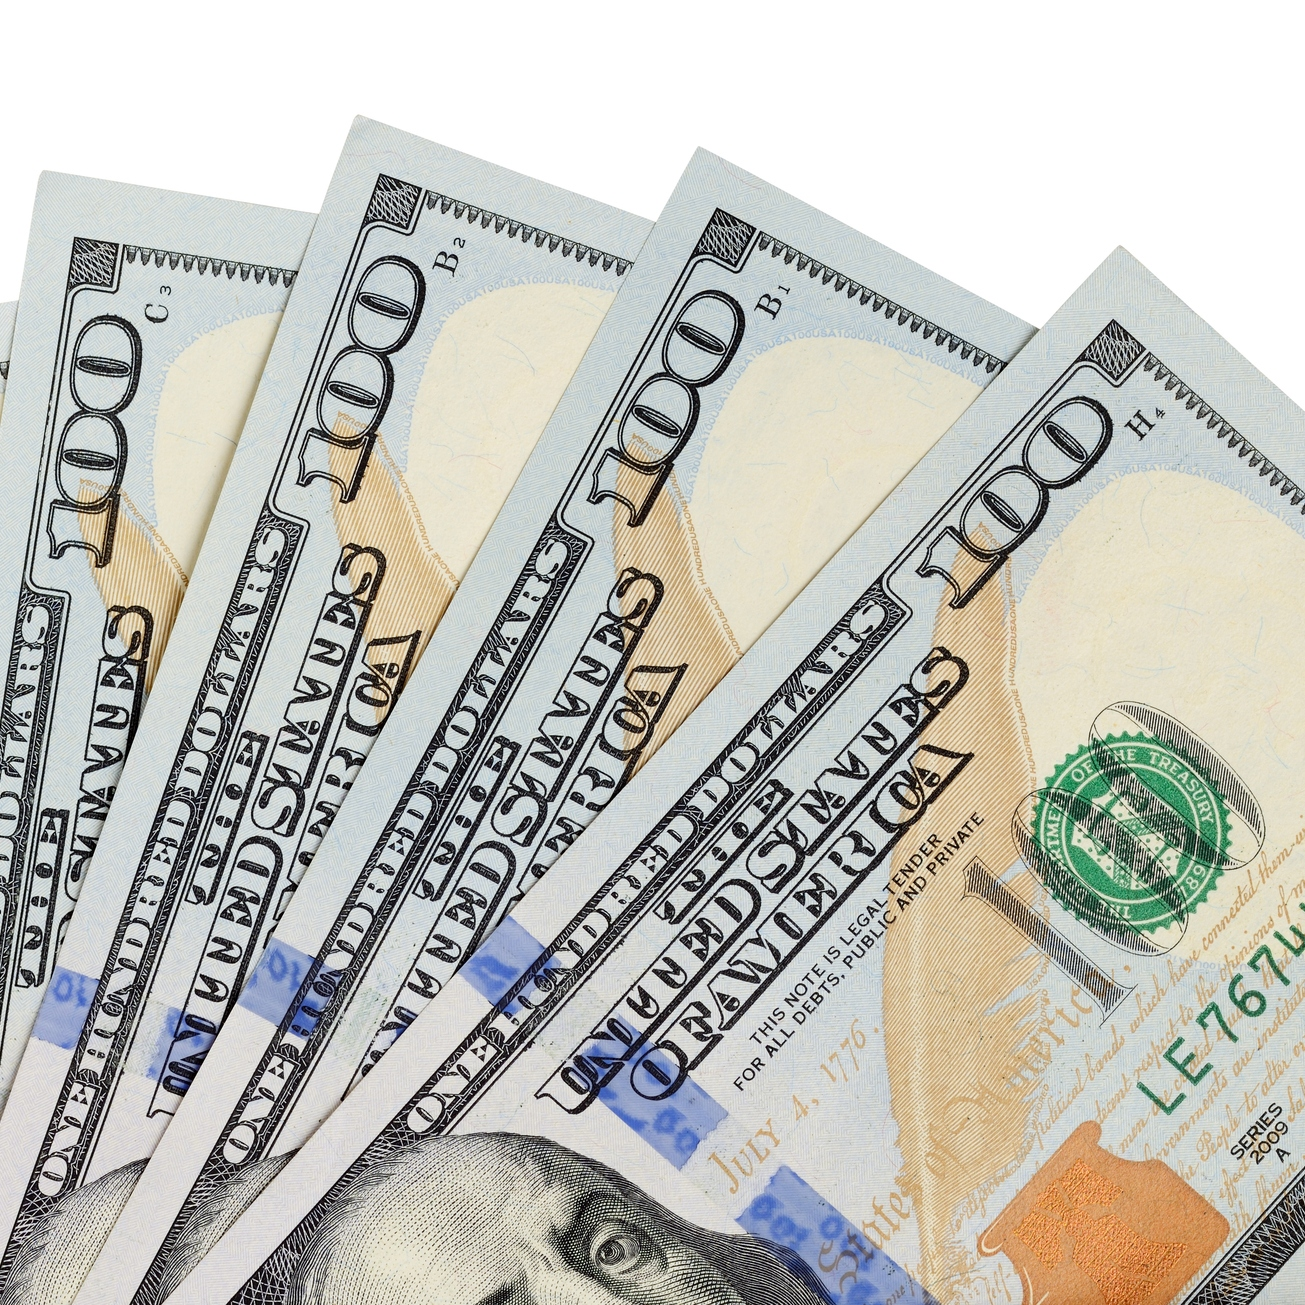 Free Pictures of Money | One Percent Finance